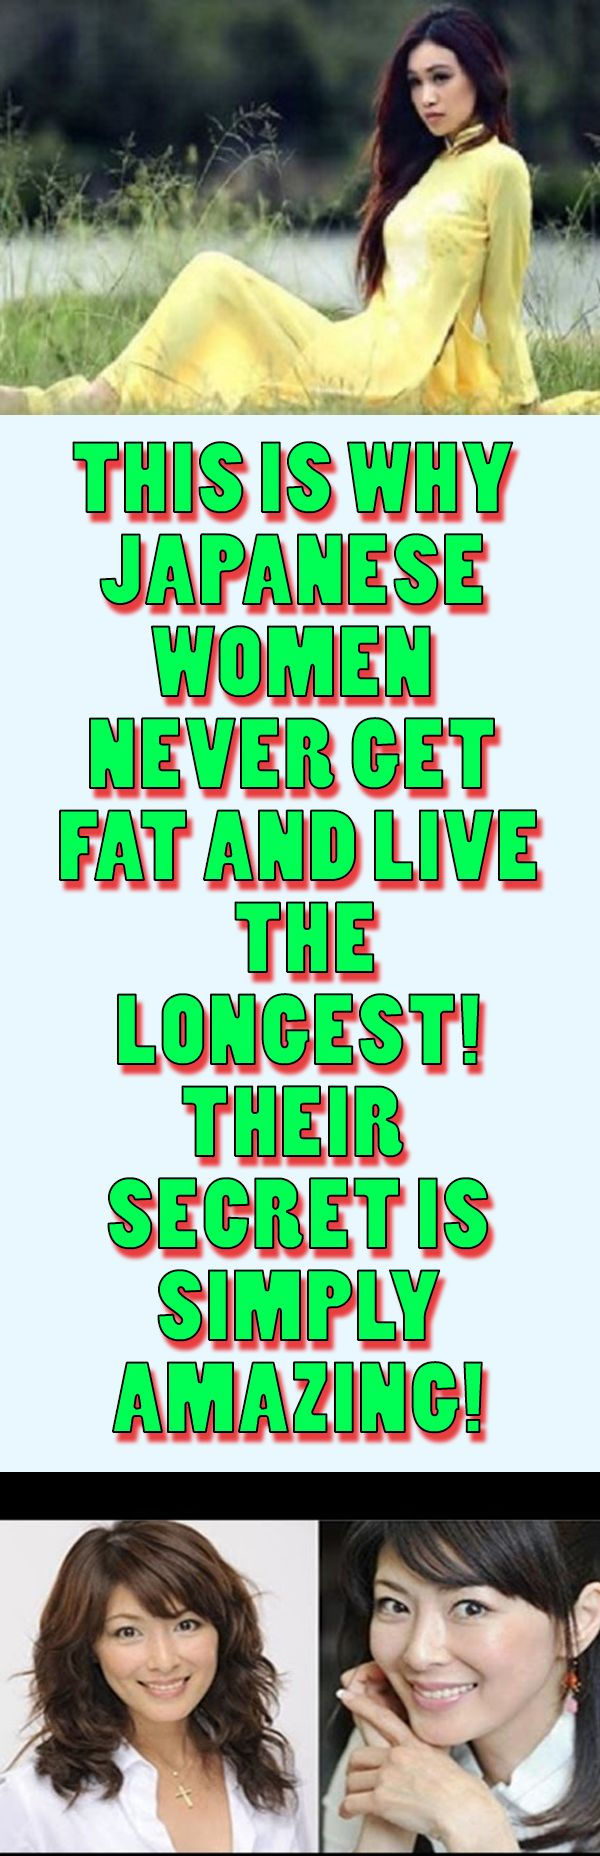 This Is Why Japanese Women Never Get Fat And Live The Longest! Their Secret Is Simply Amazing!